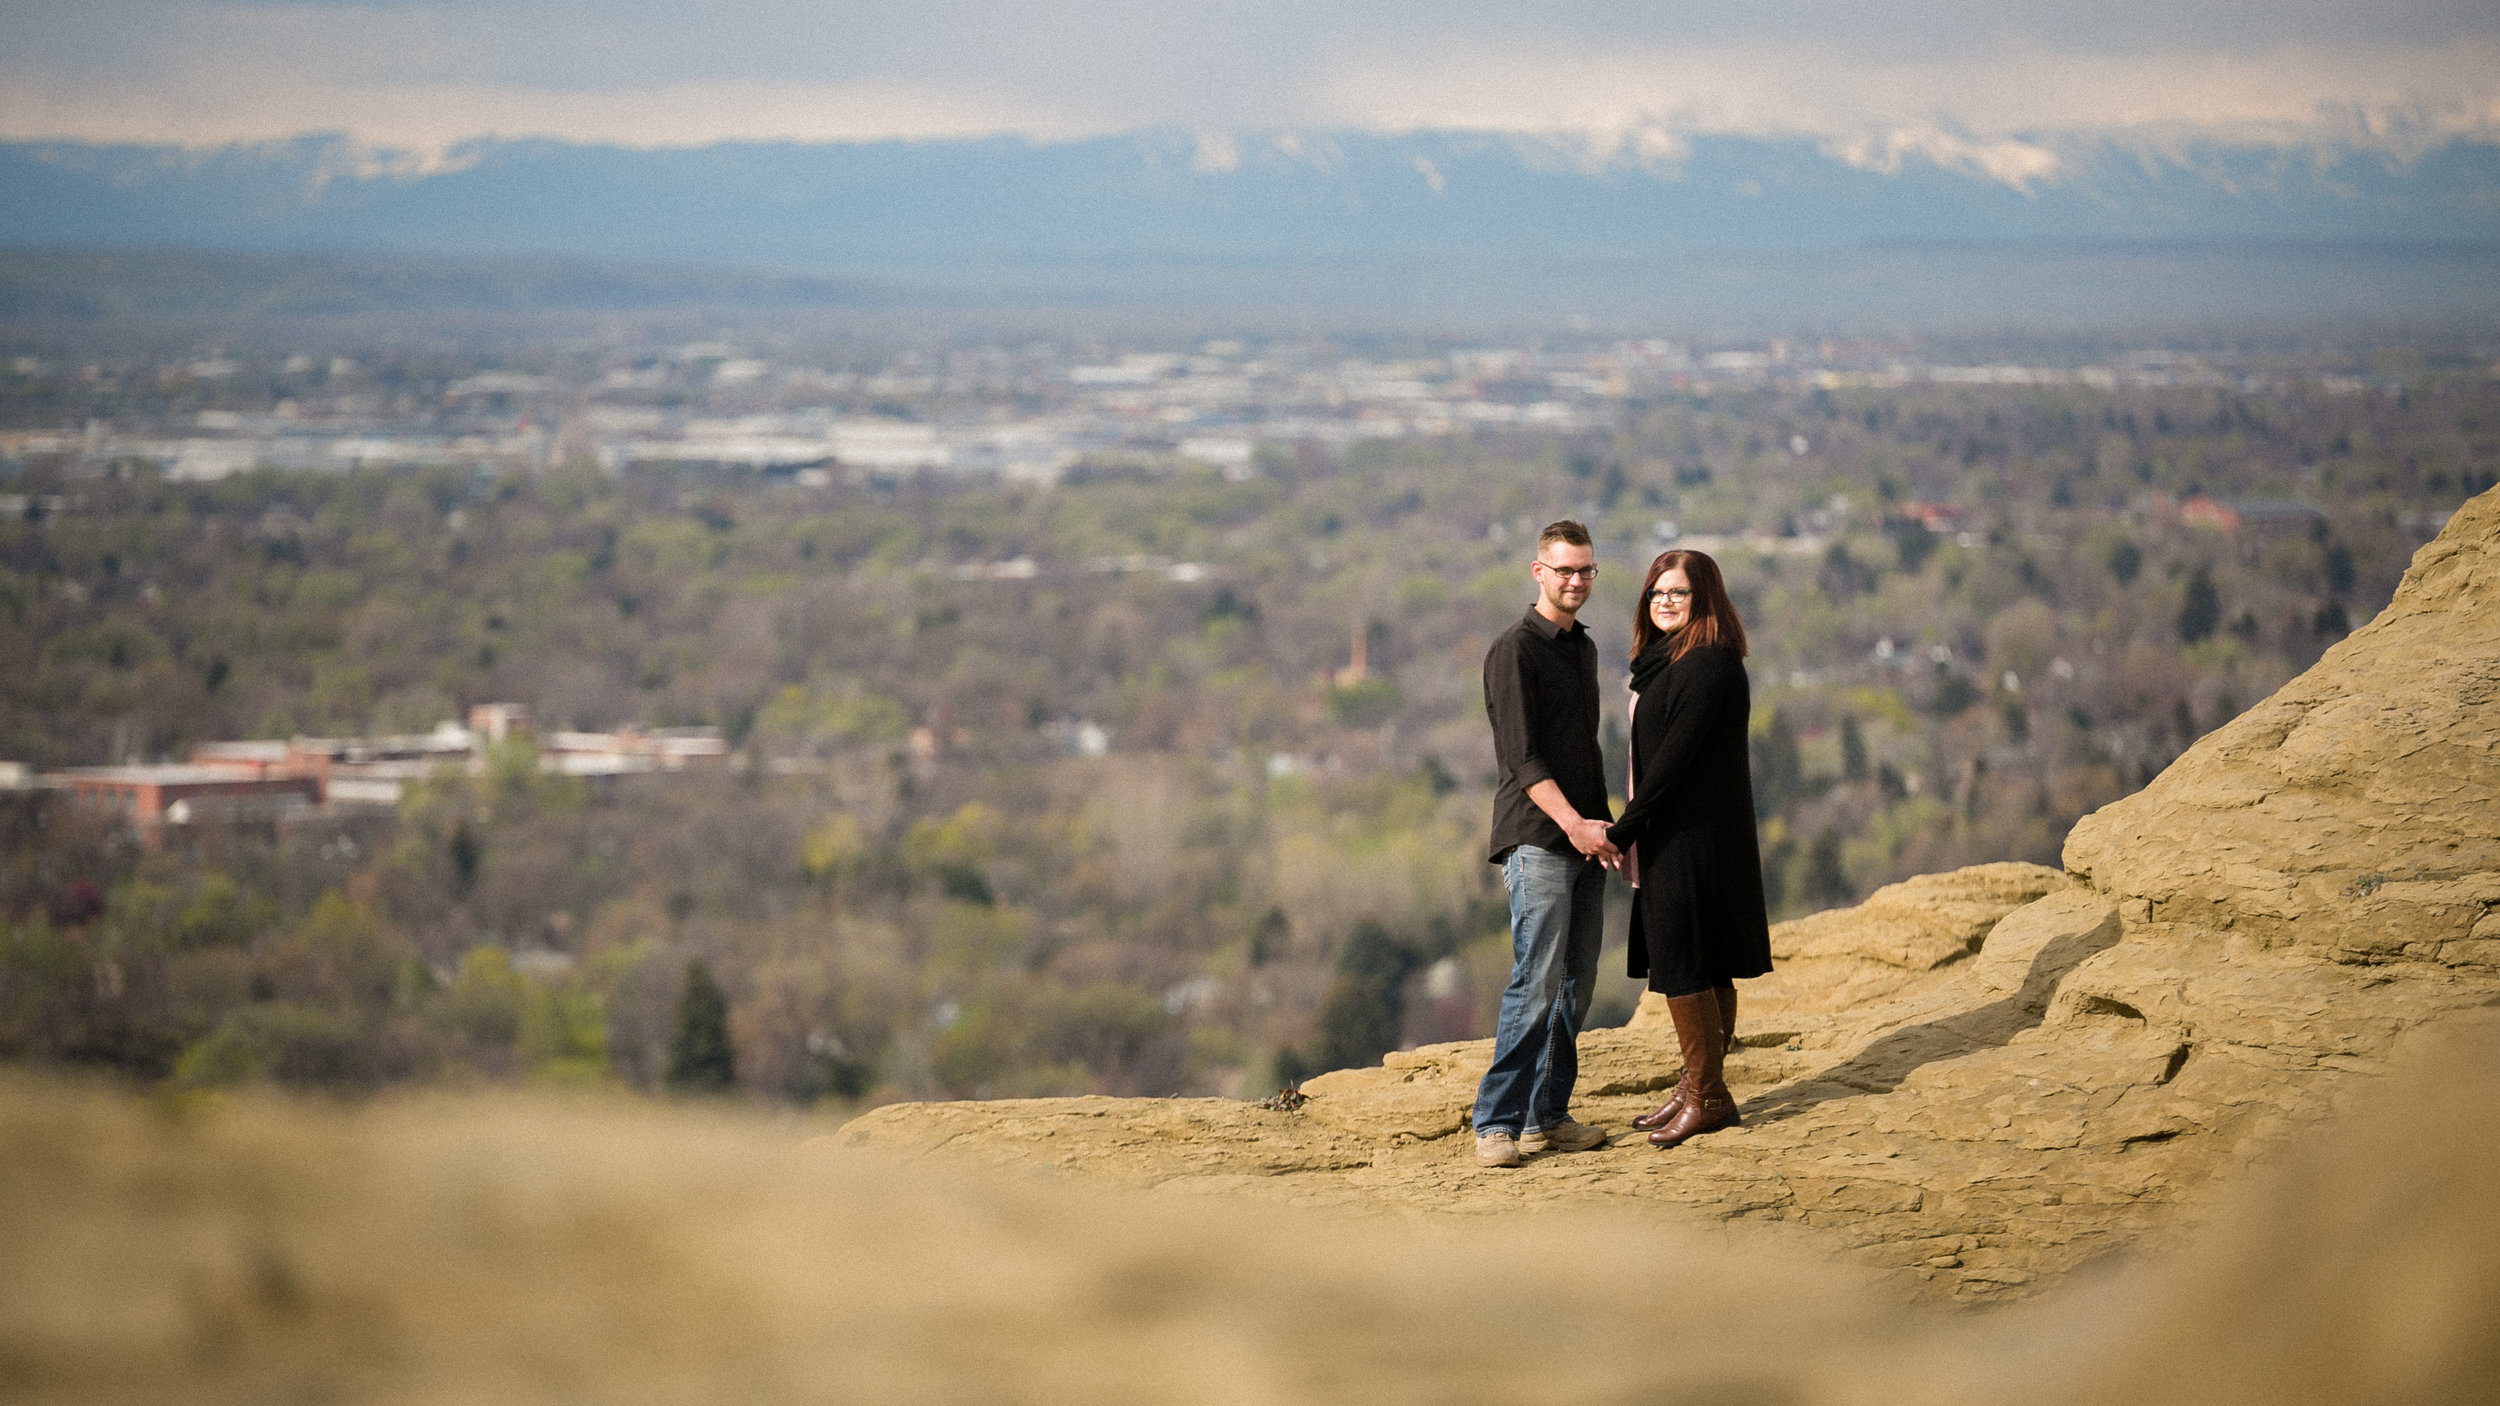 I just love the view of billings from the rims!